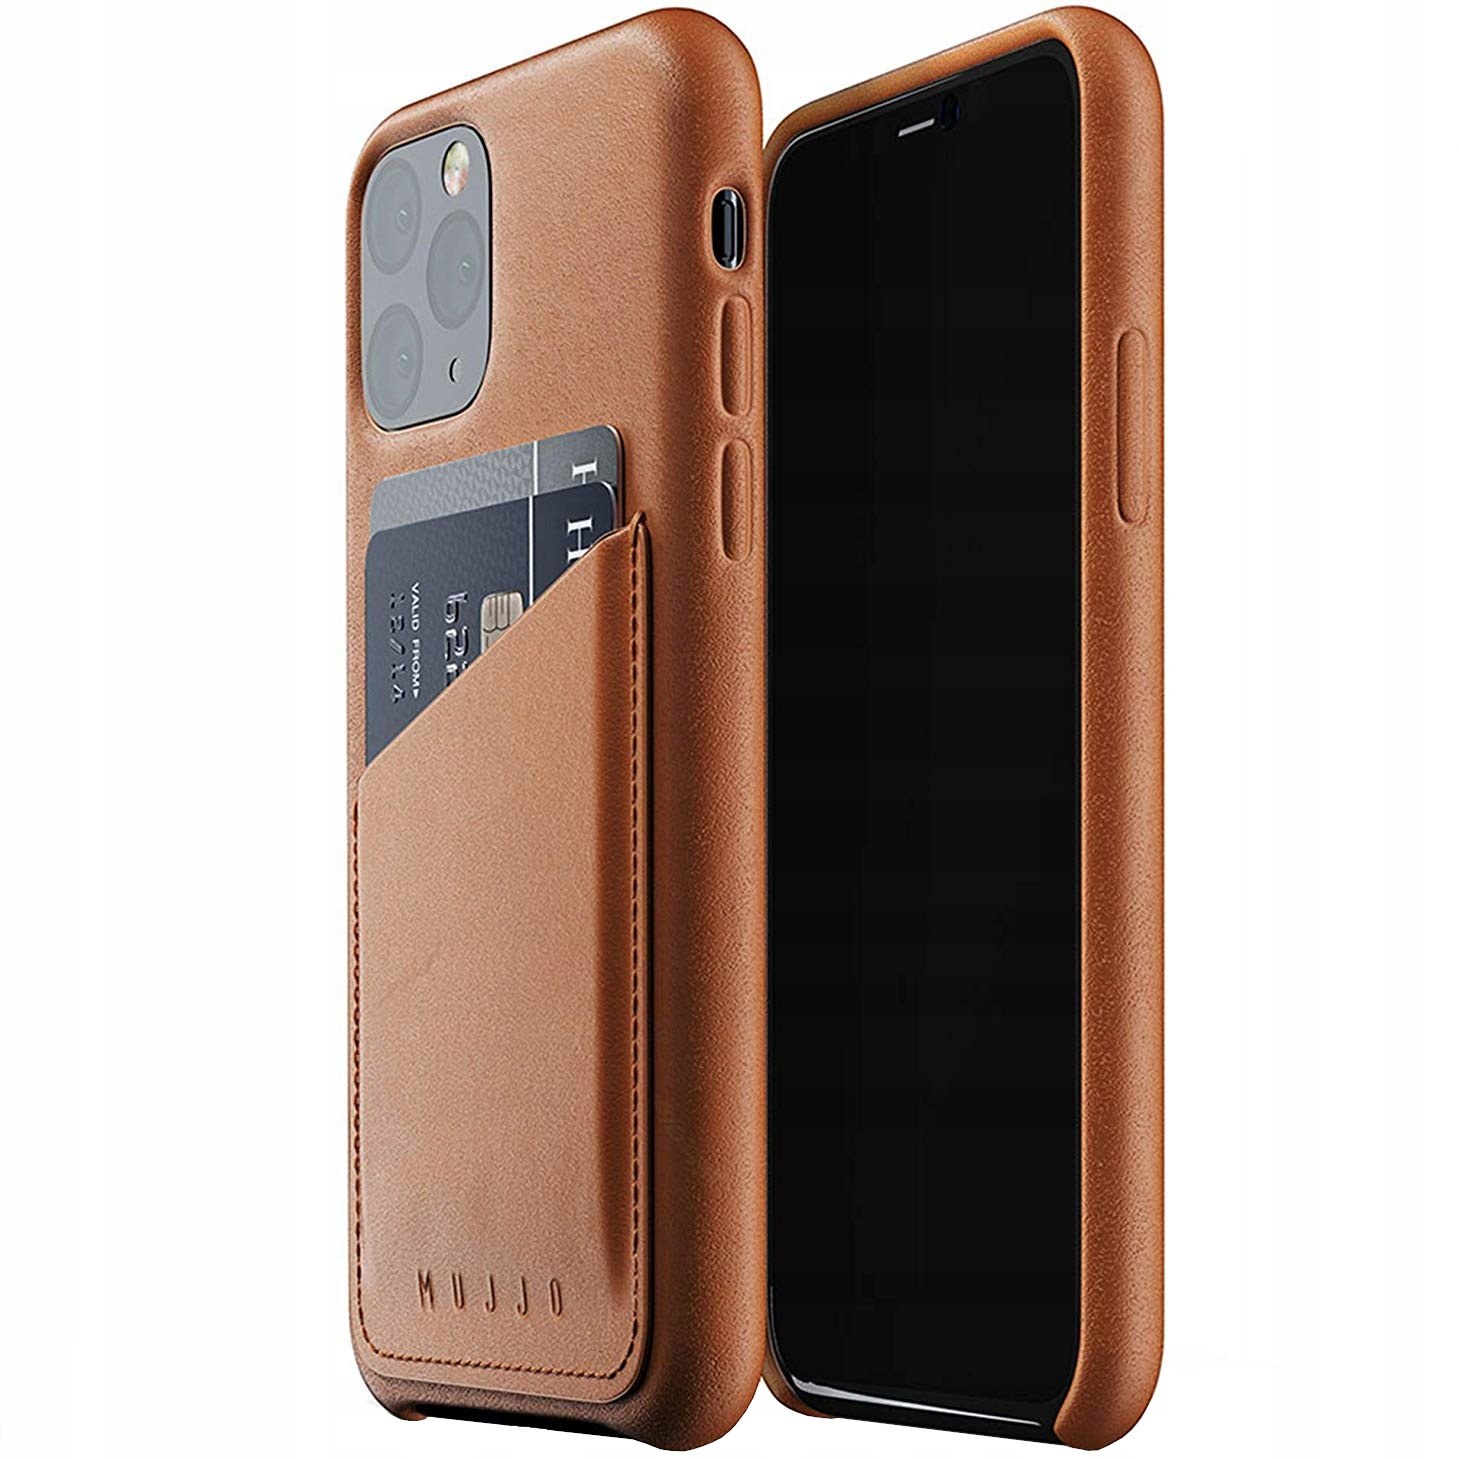 Etui skórzane do iPhone 11 Pro, Mujjo Leather Case